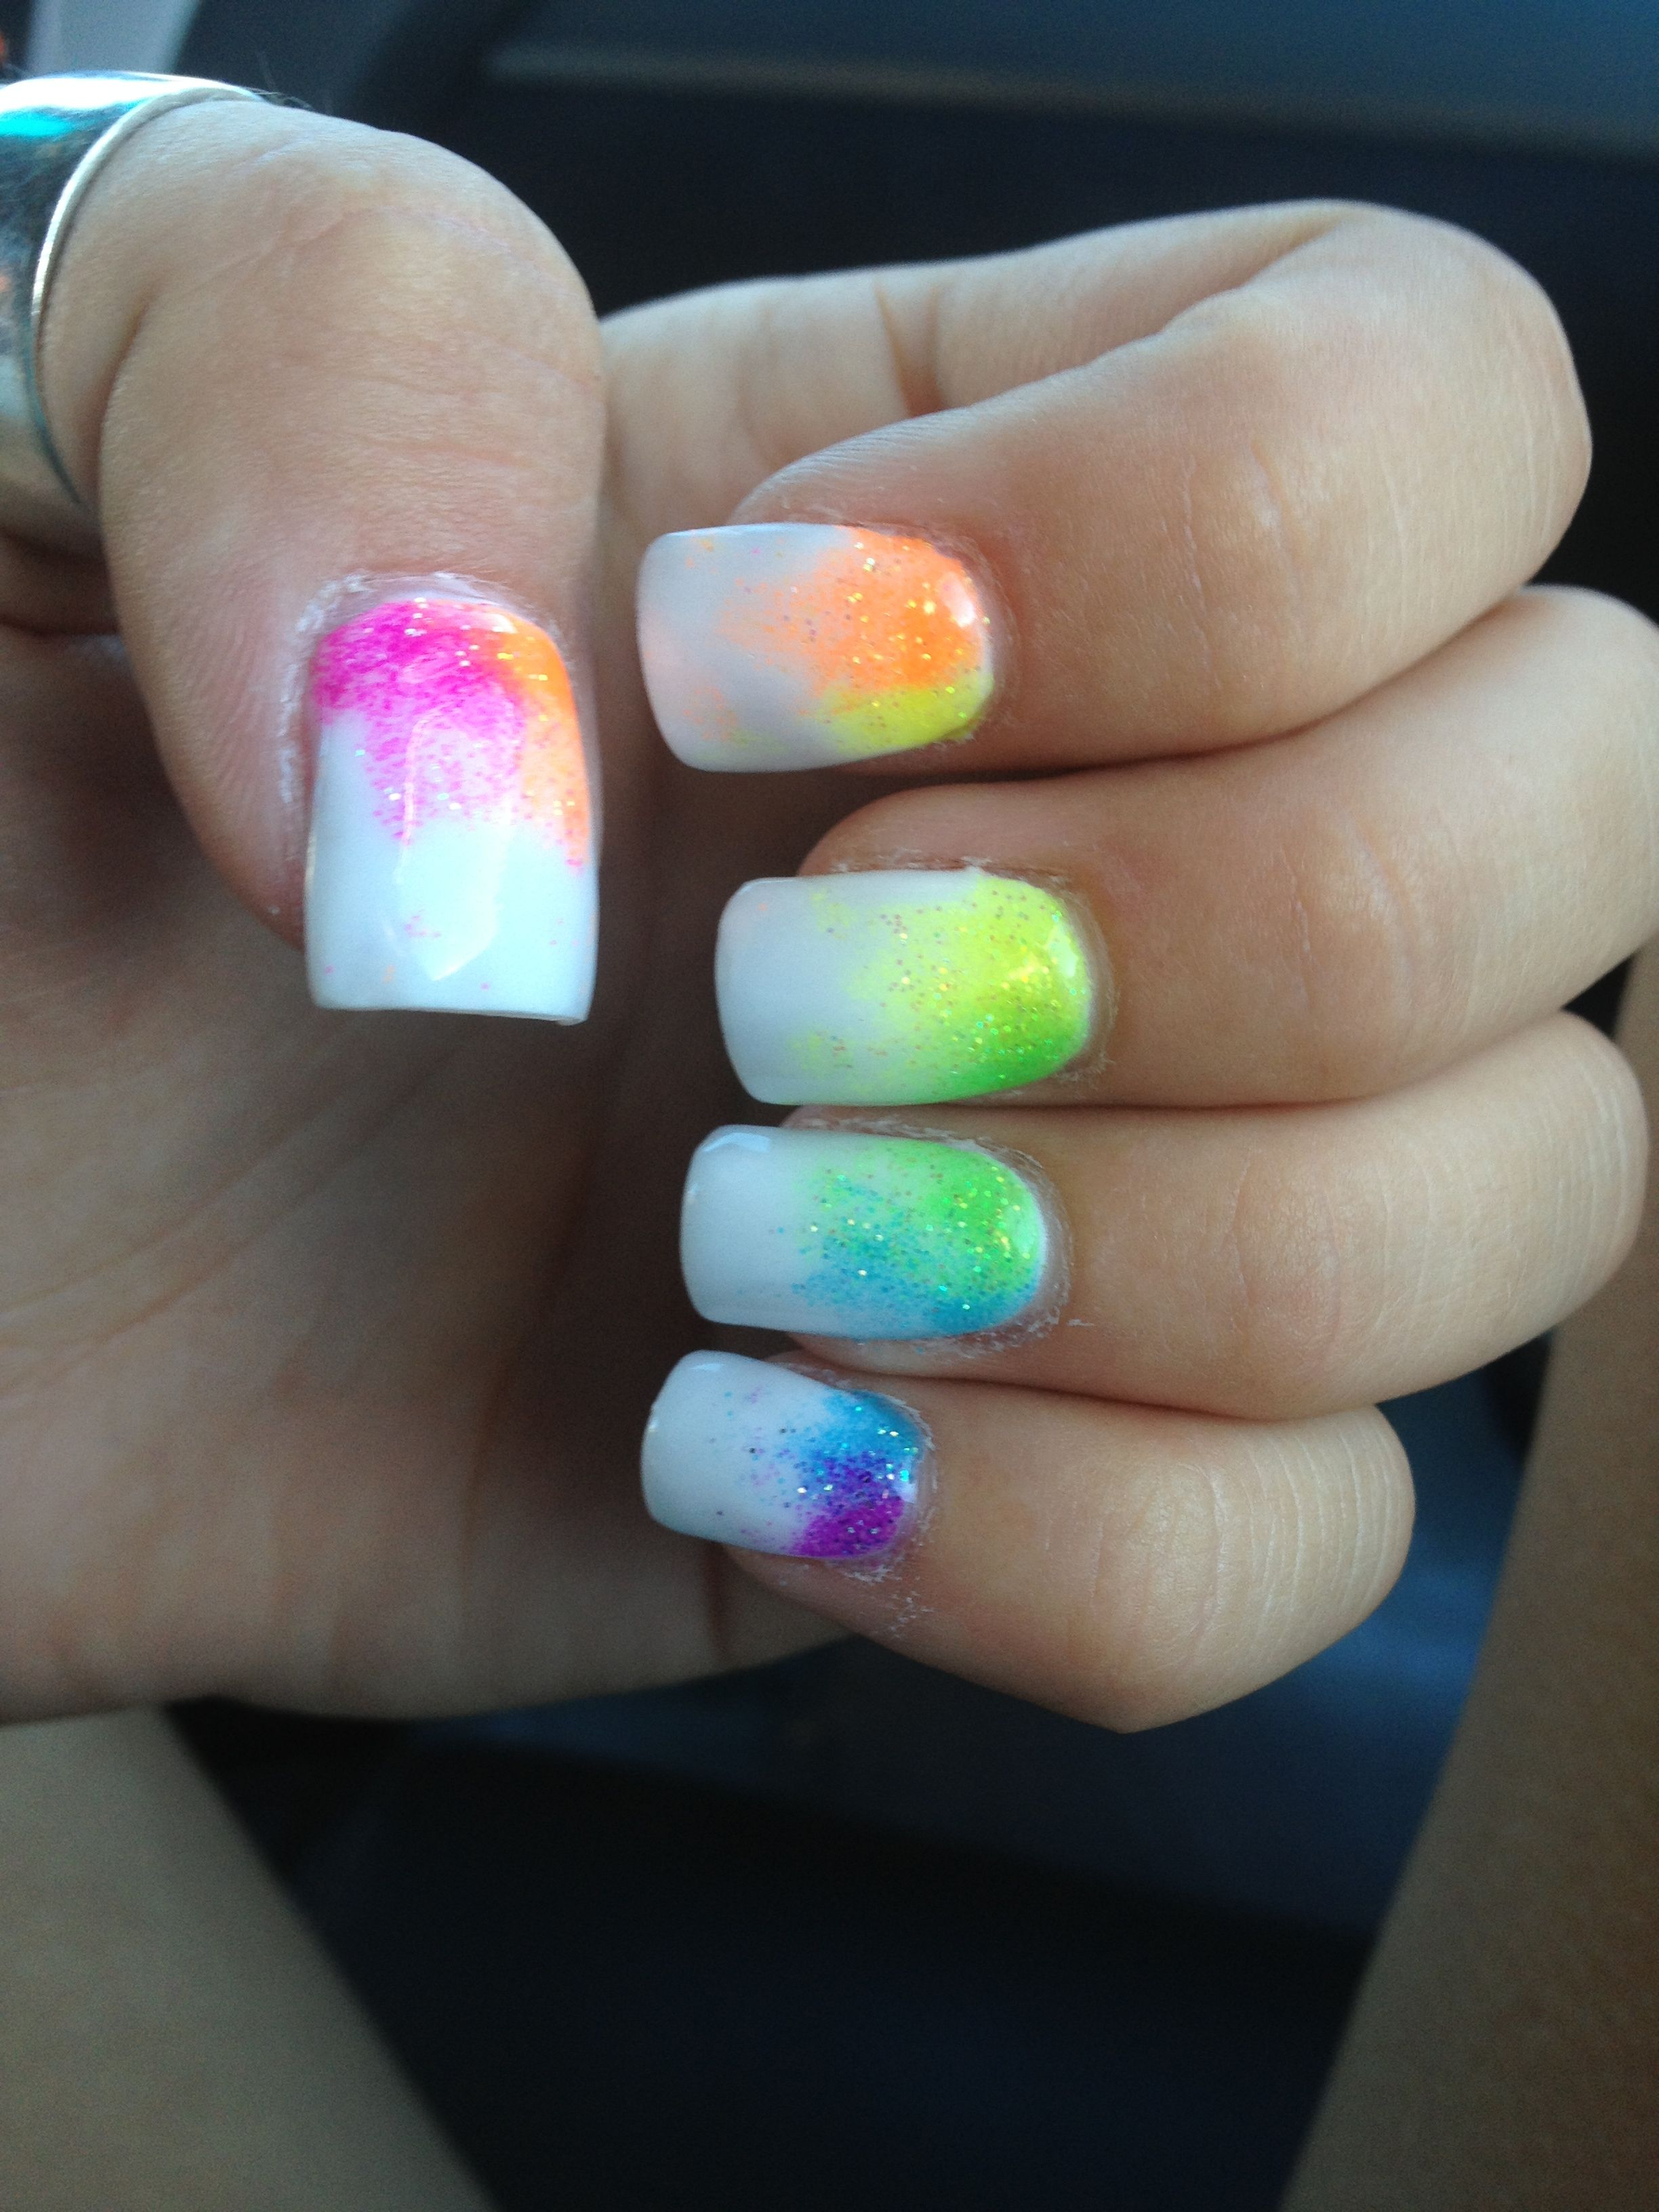 White color nail art - White And Neon Rainbow Fade Nails Summer Fun Bright Colors Nails Nails Nails